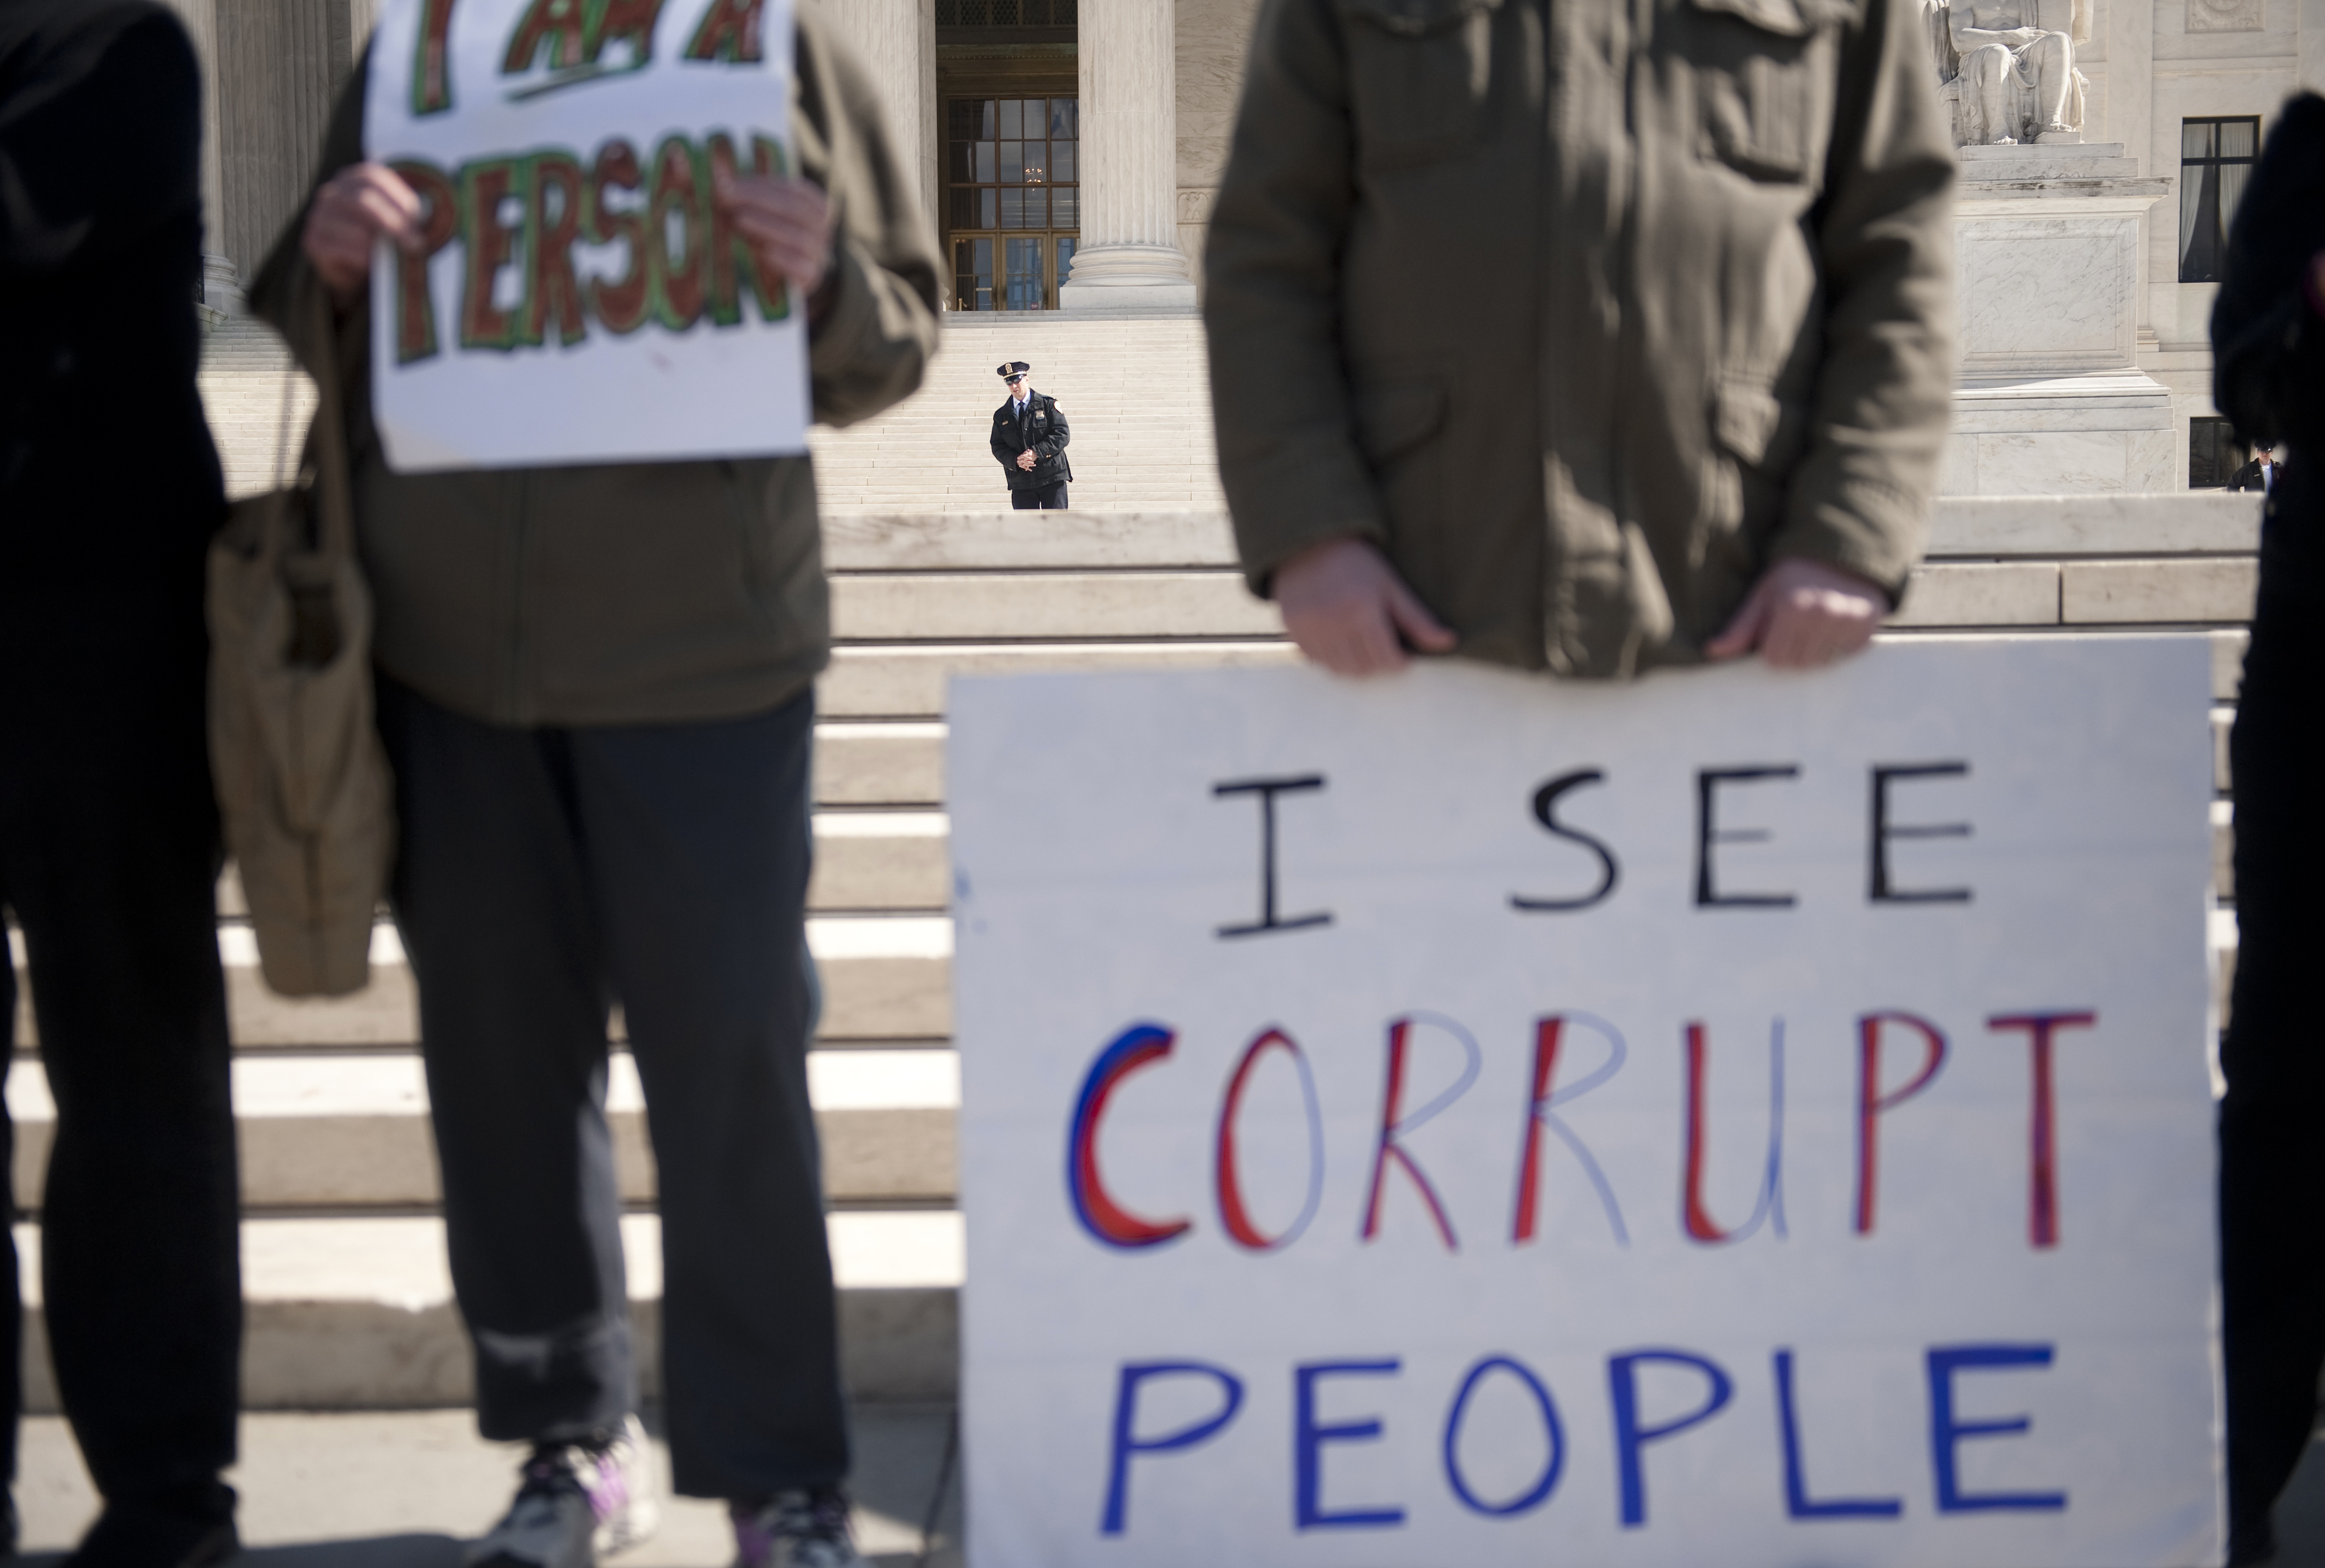 Common Cause, a national nonpartisan   citizens  lobbying group, held a protest to urge the Supreme Court to overturn Citizens United v. Federal Election Commission.